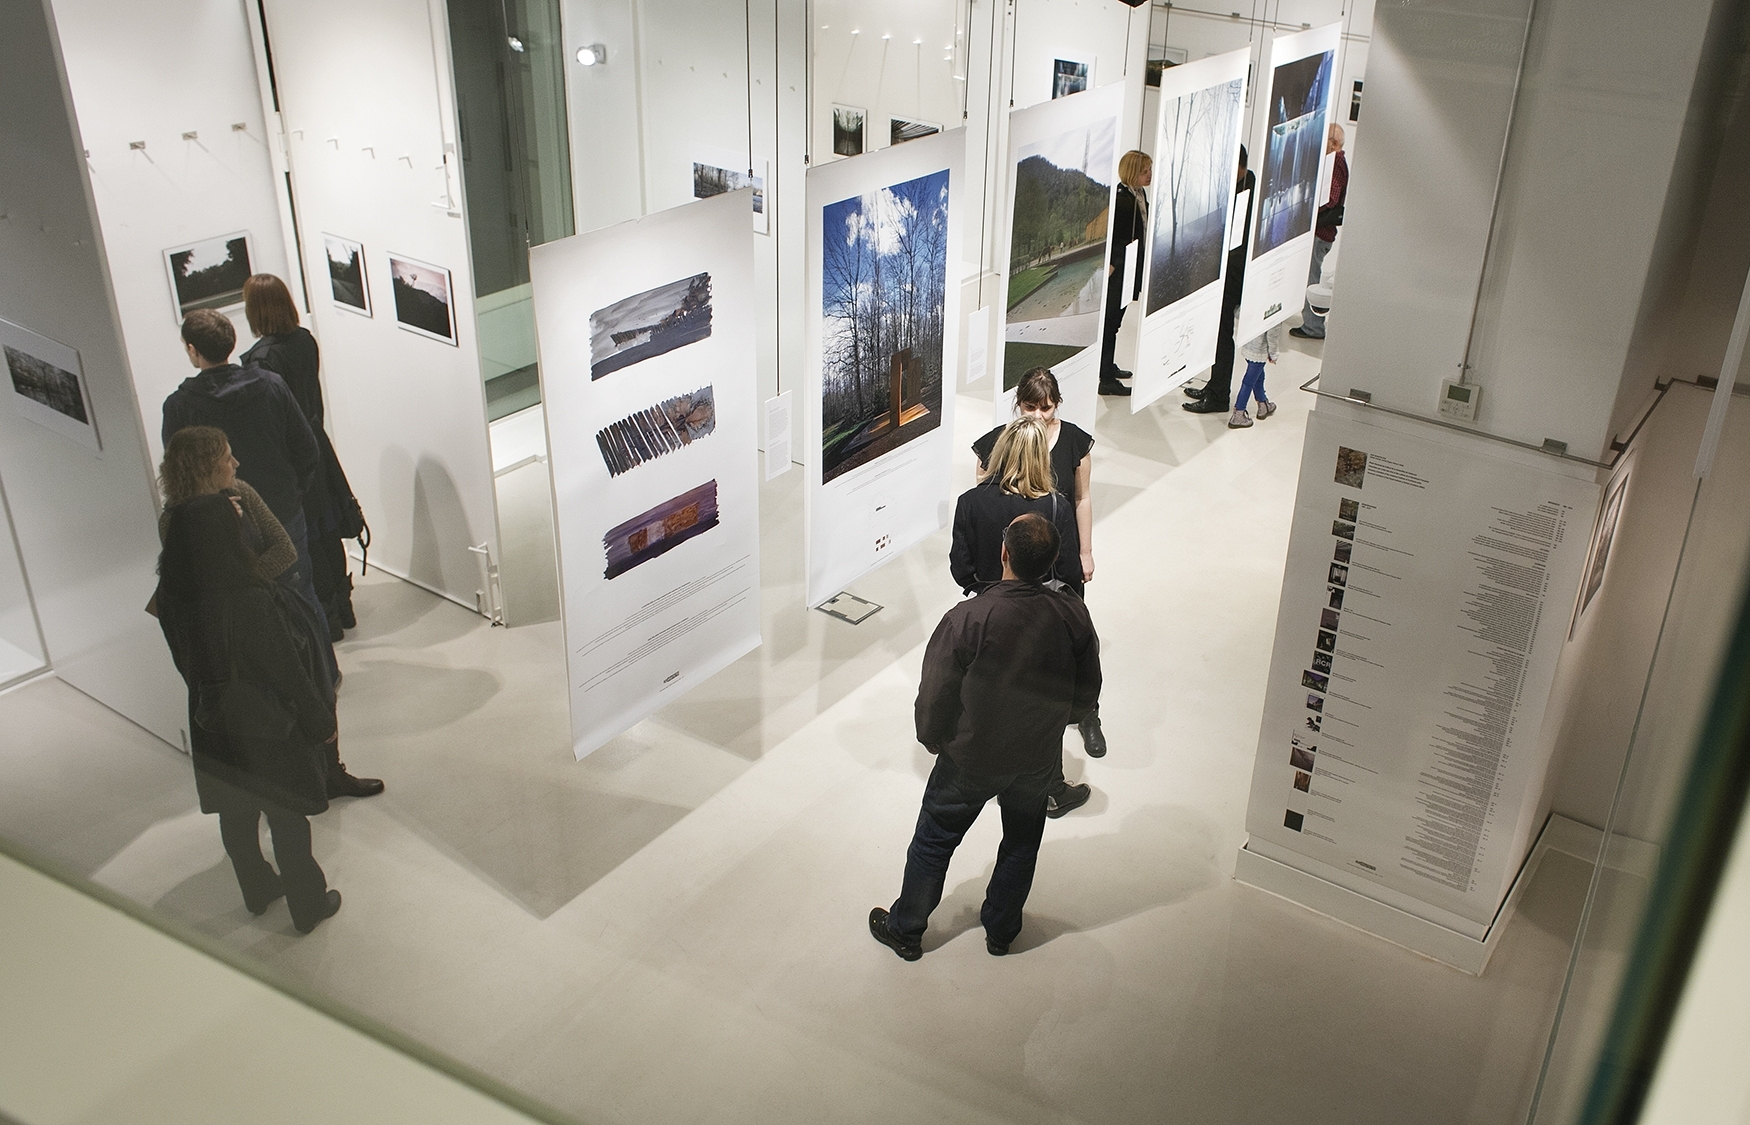 RCR Arquitectes Exhibition at Oris House of Architecture - Source: Archdaily